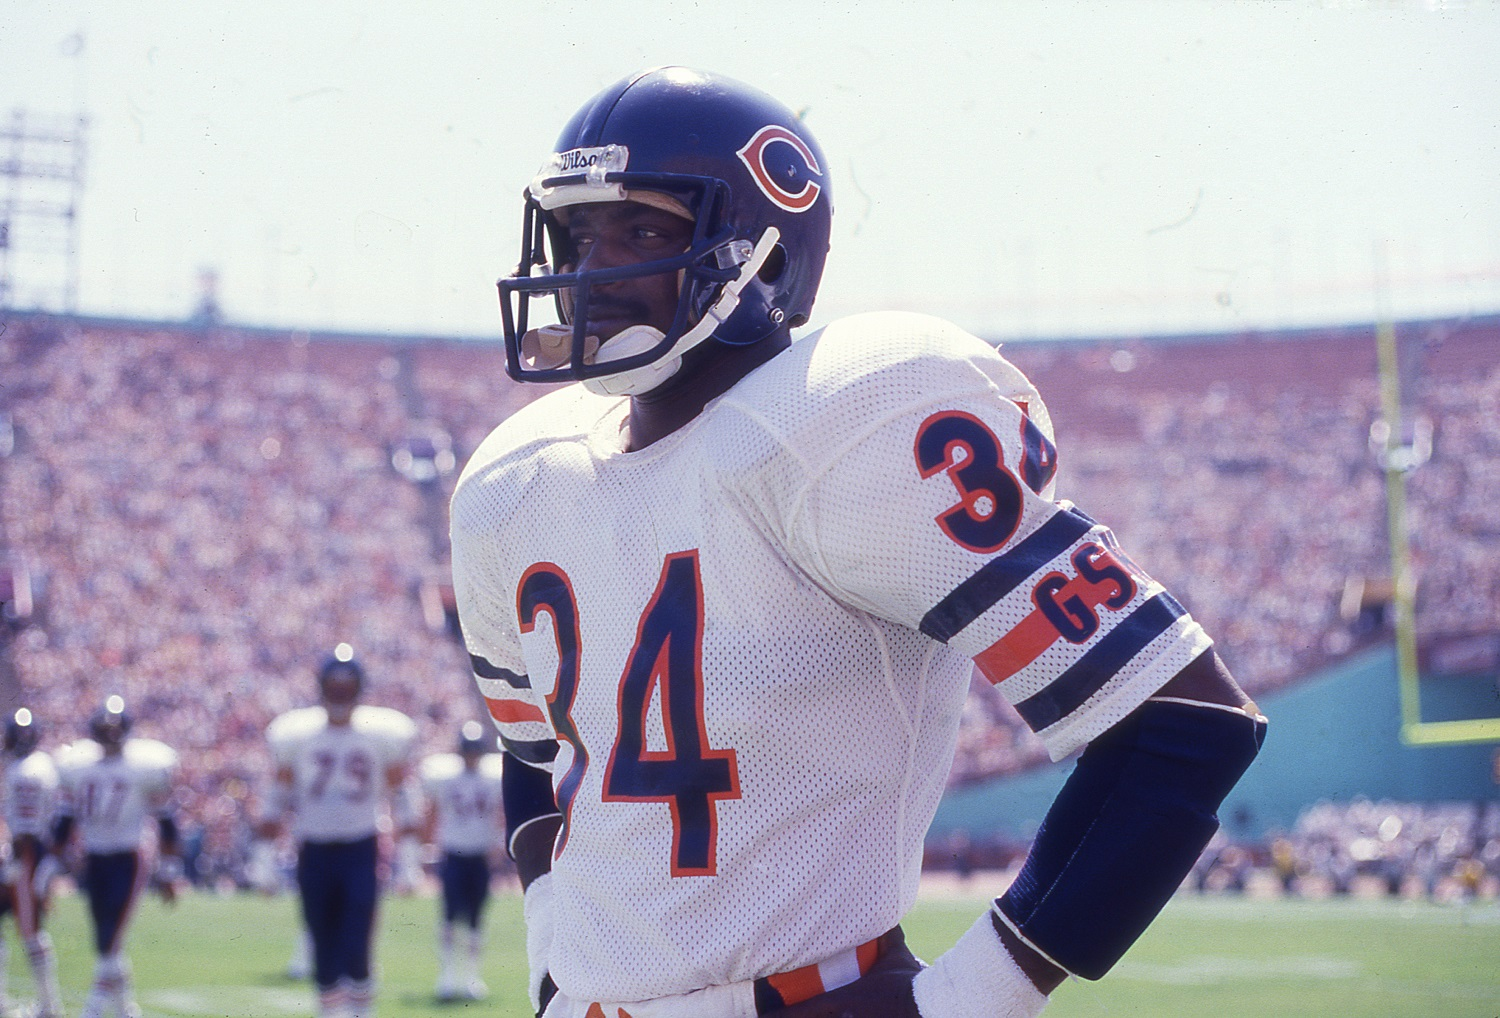 Walter Payton Had His Own 'Flu Game' and Broke an NFL Record Previously Held by O.J. Simpson